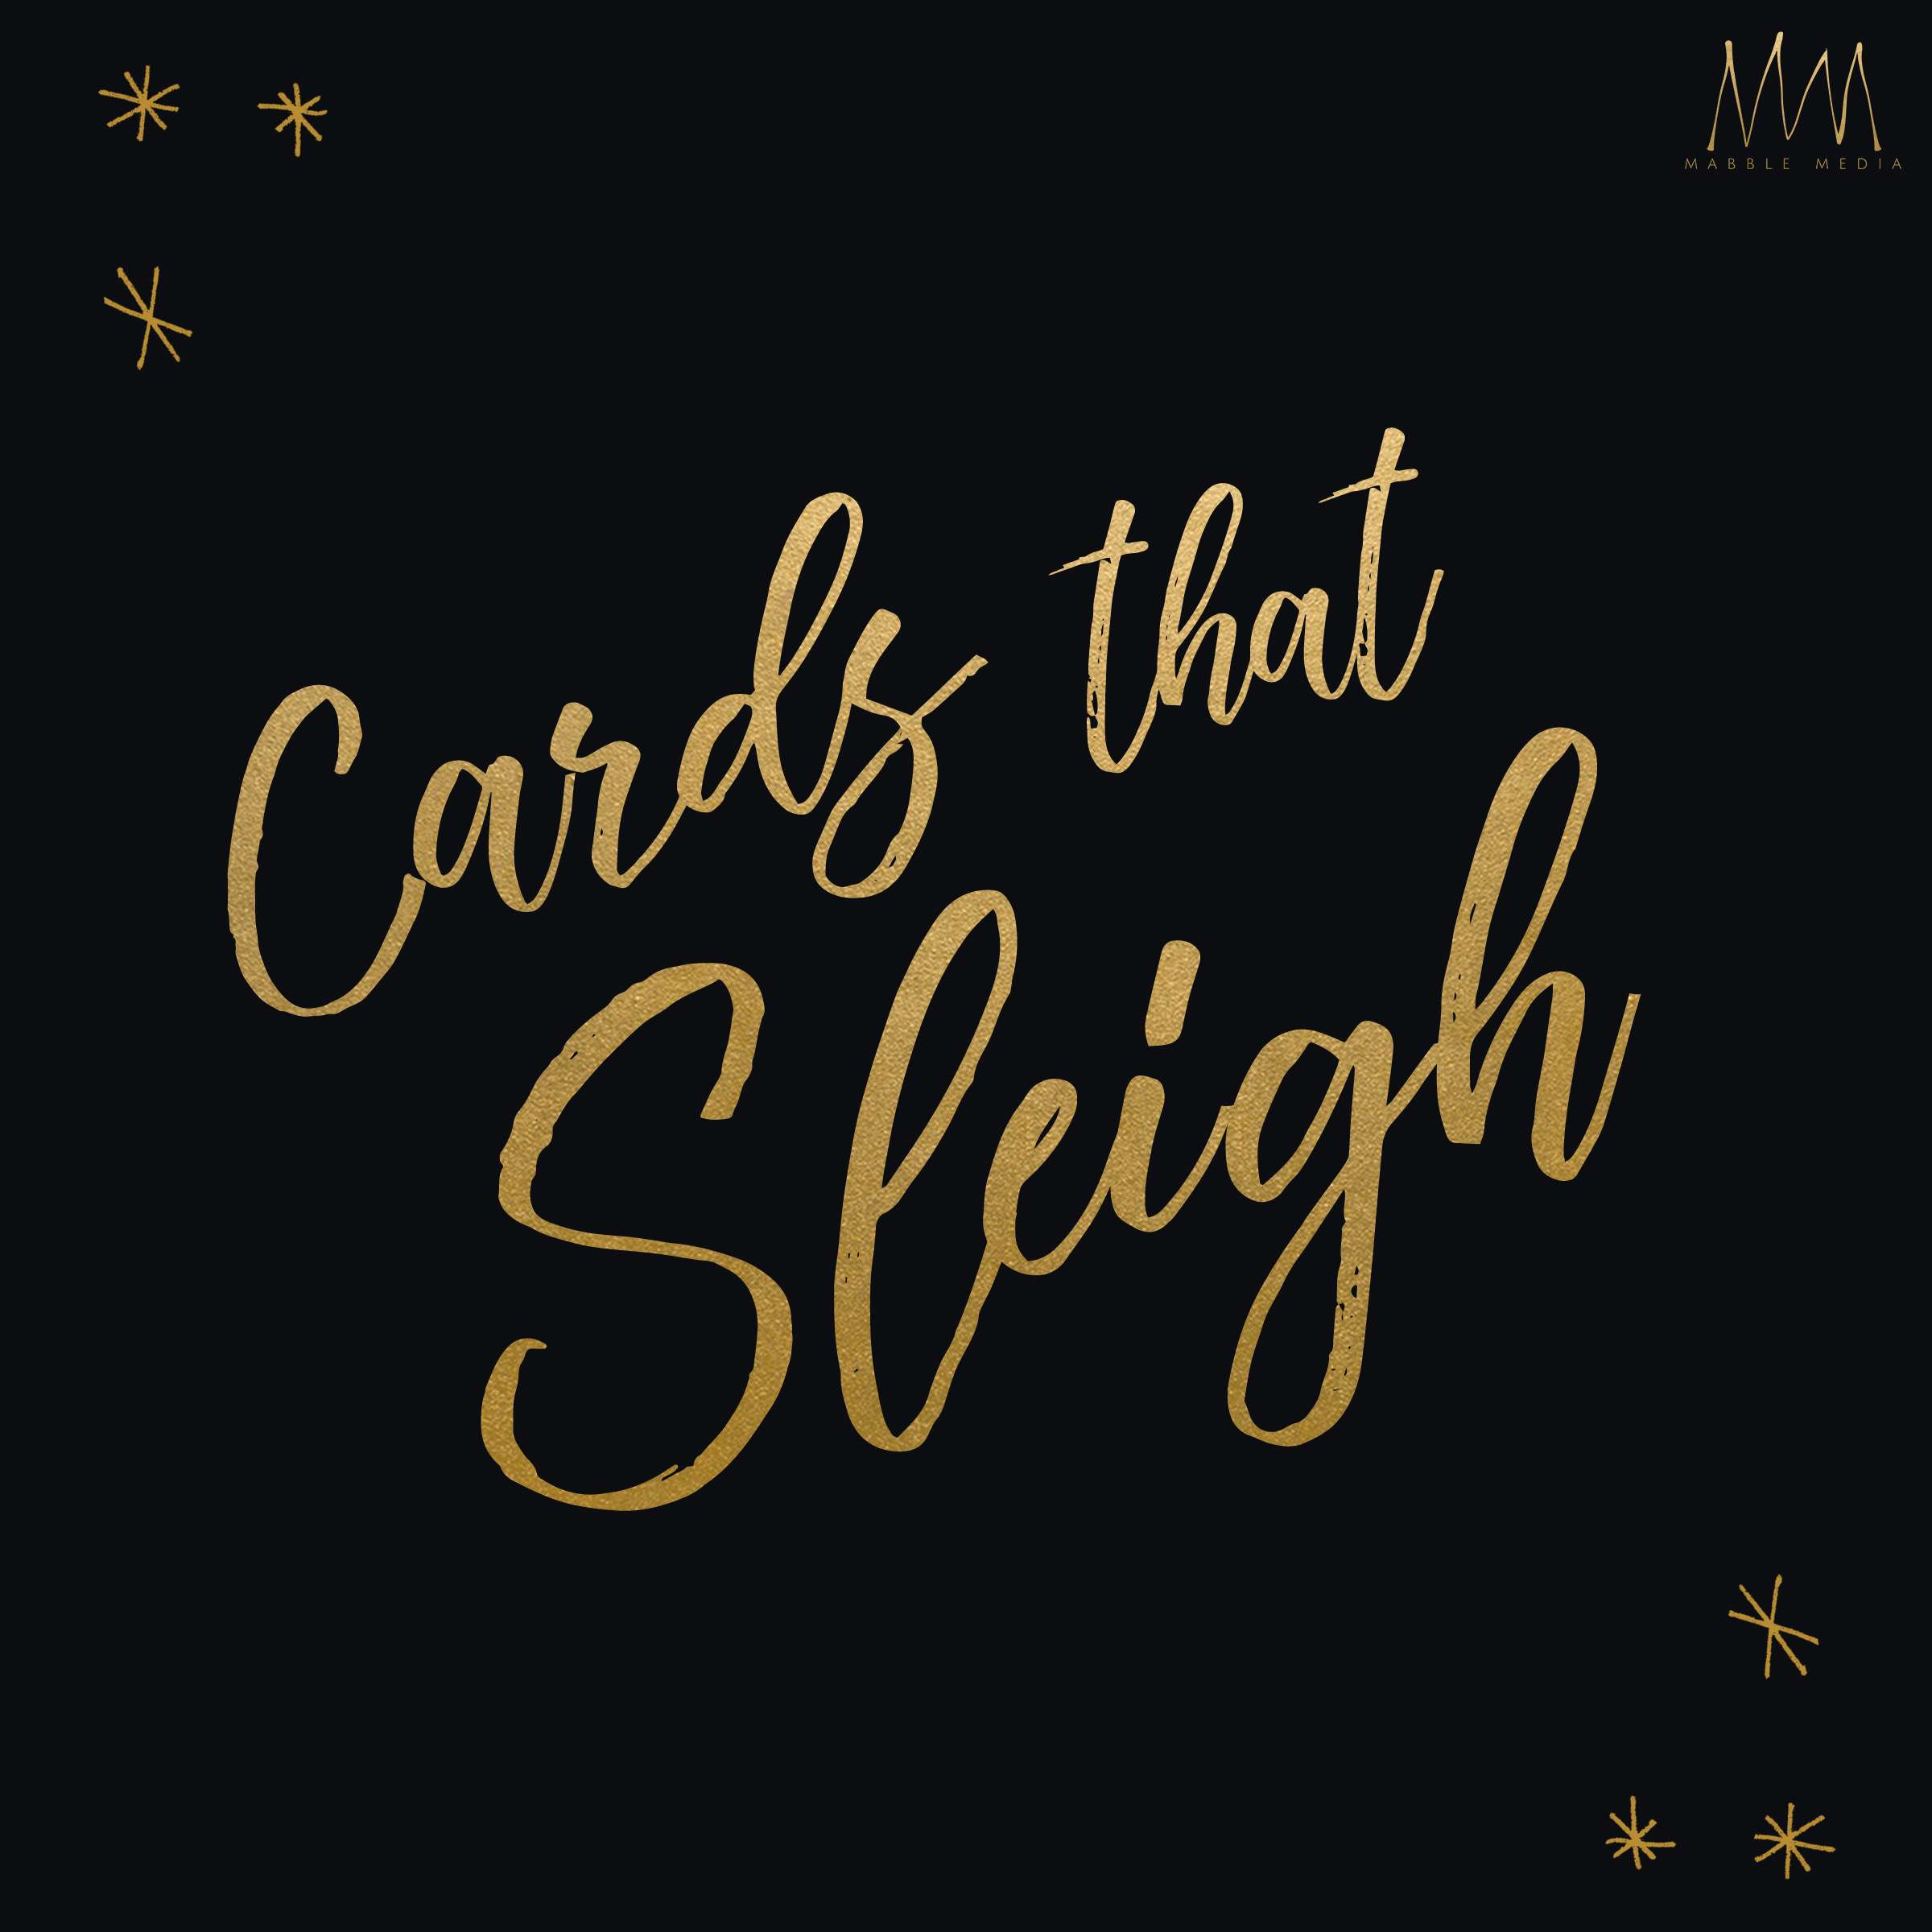 cards that sleigh reno christmas card design